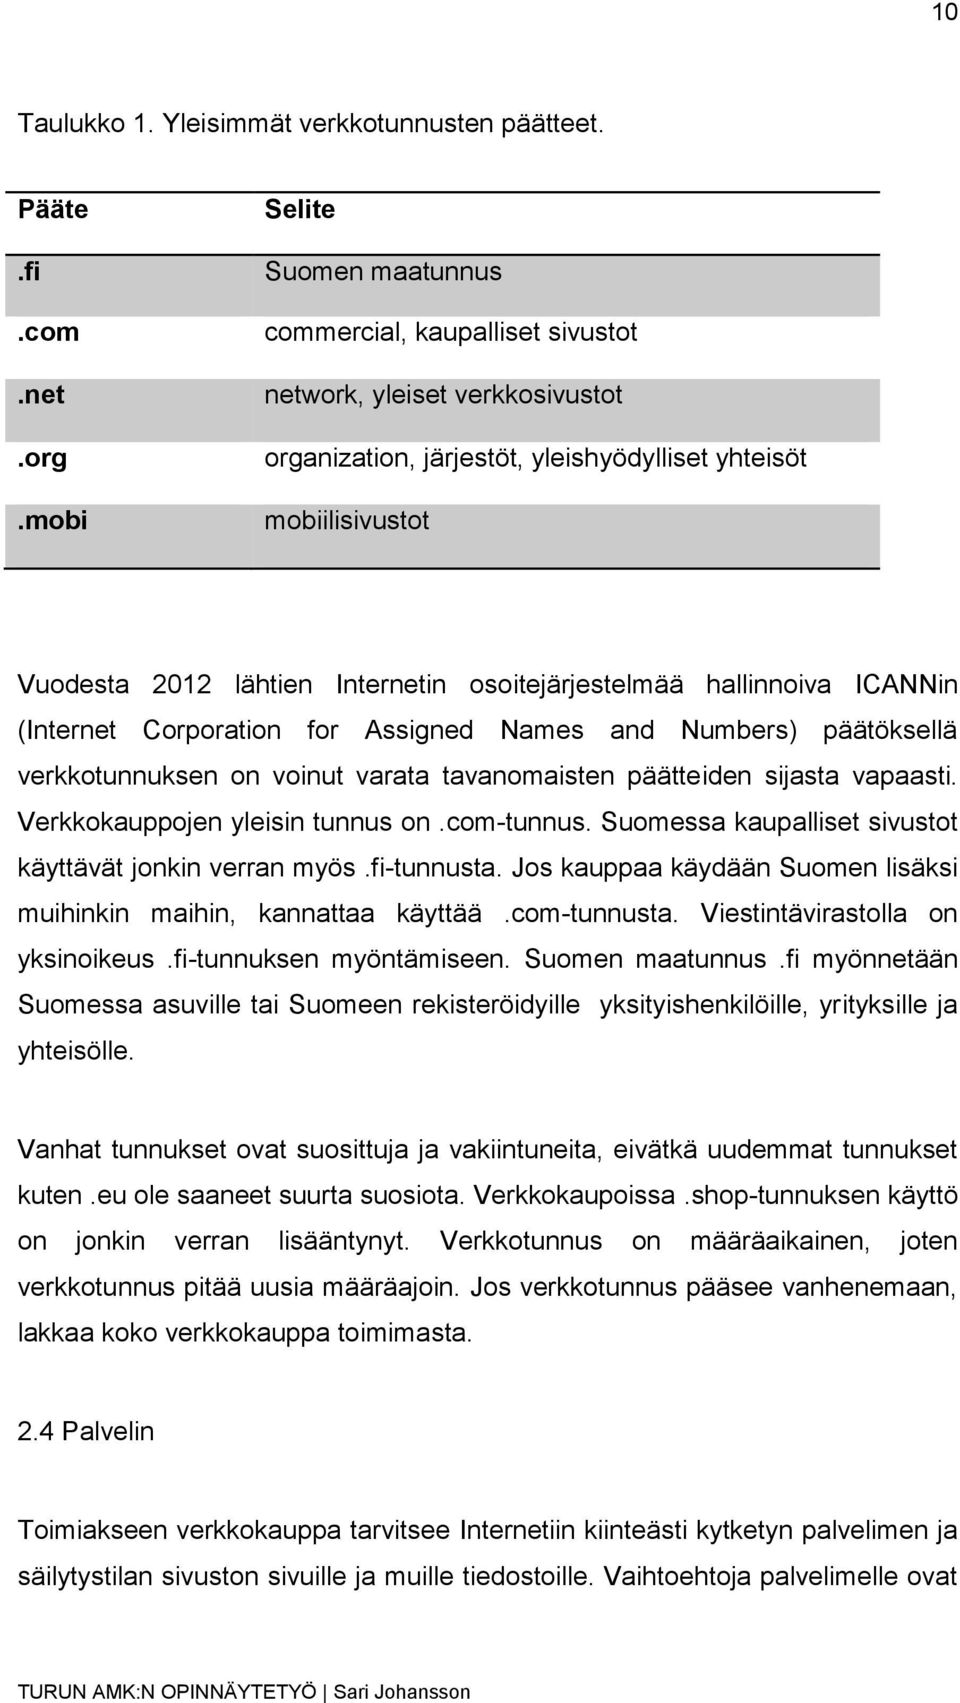 osoitejärjestelmää hallinnoiva ICANNin (Internet Corporation for Assigned Names and Numbers) päätöksellä verkkotunnuksen on voinut varata tavanomaisten päätteiden sijasta vapaasti.